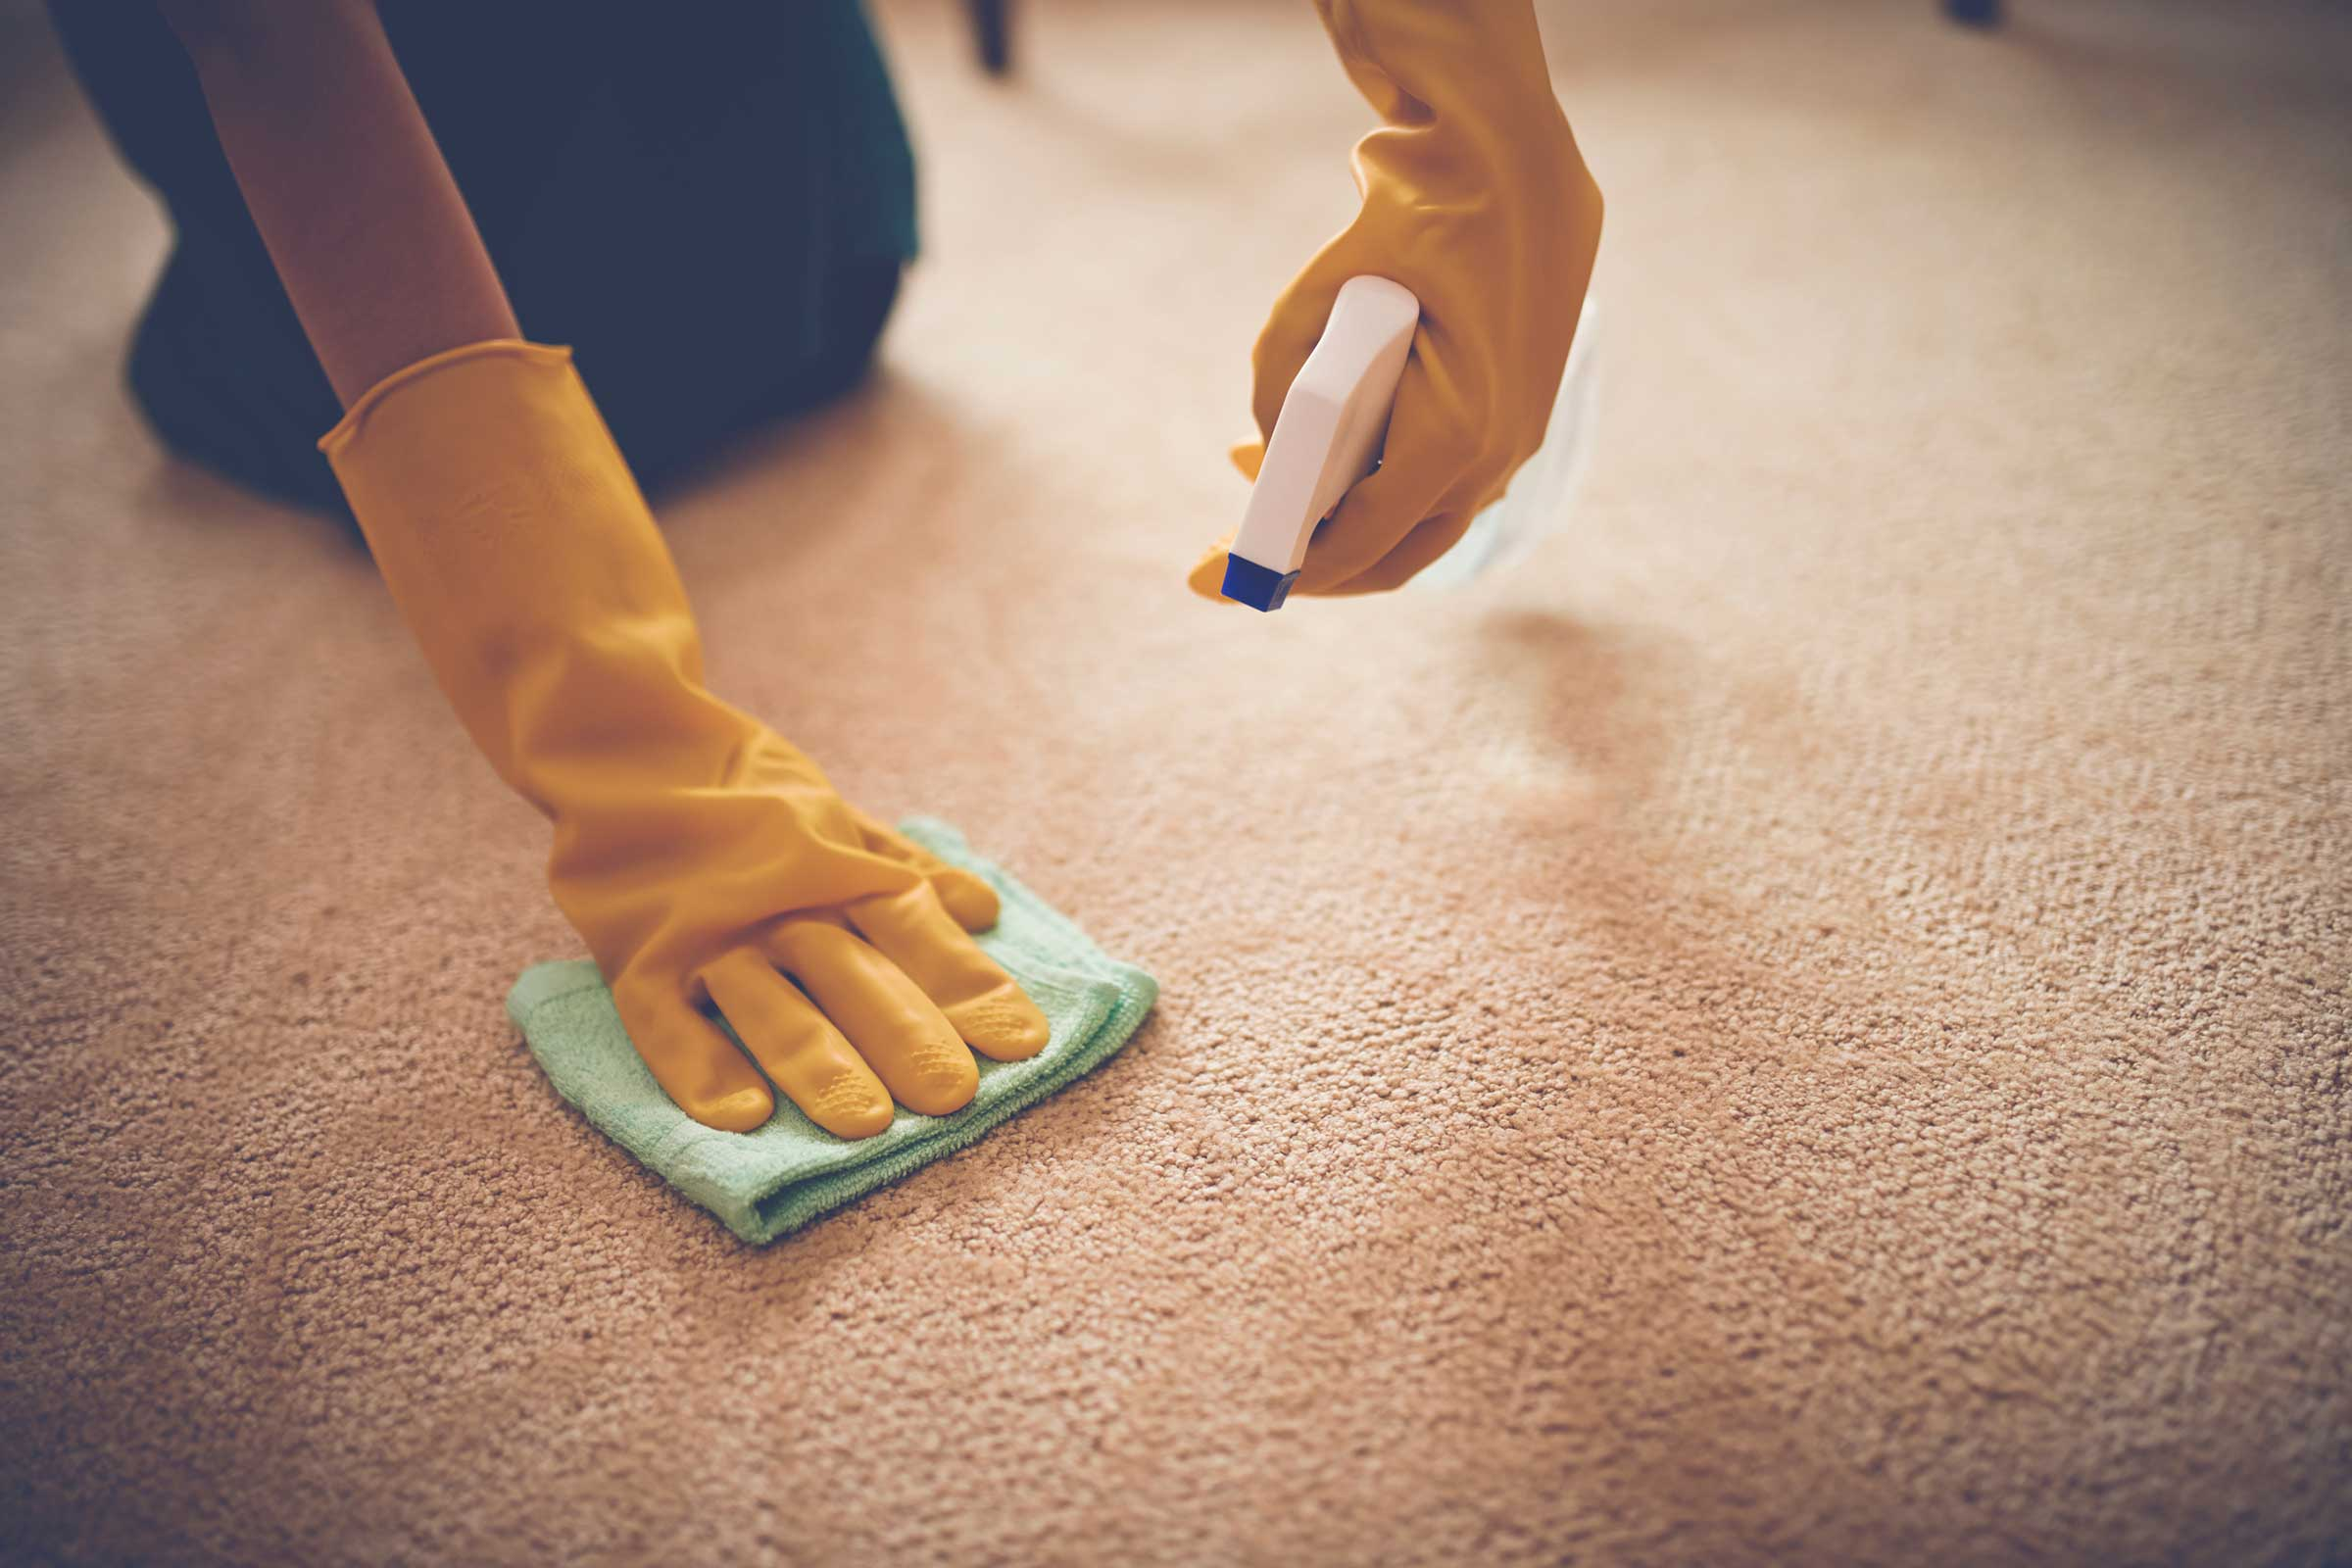 03_reasons_need_cornstarch_other_cooking_furniture_ink_stain_carpet_DragonImages